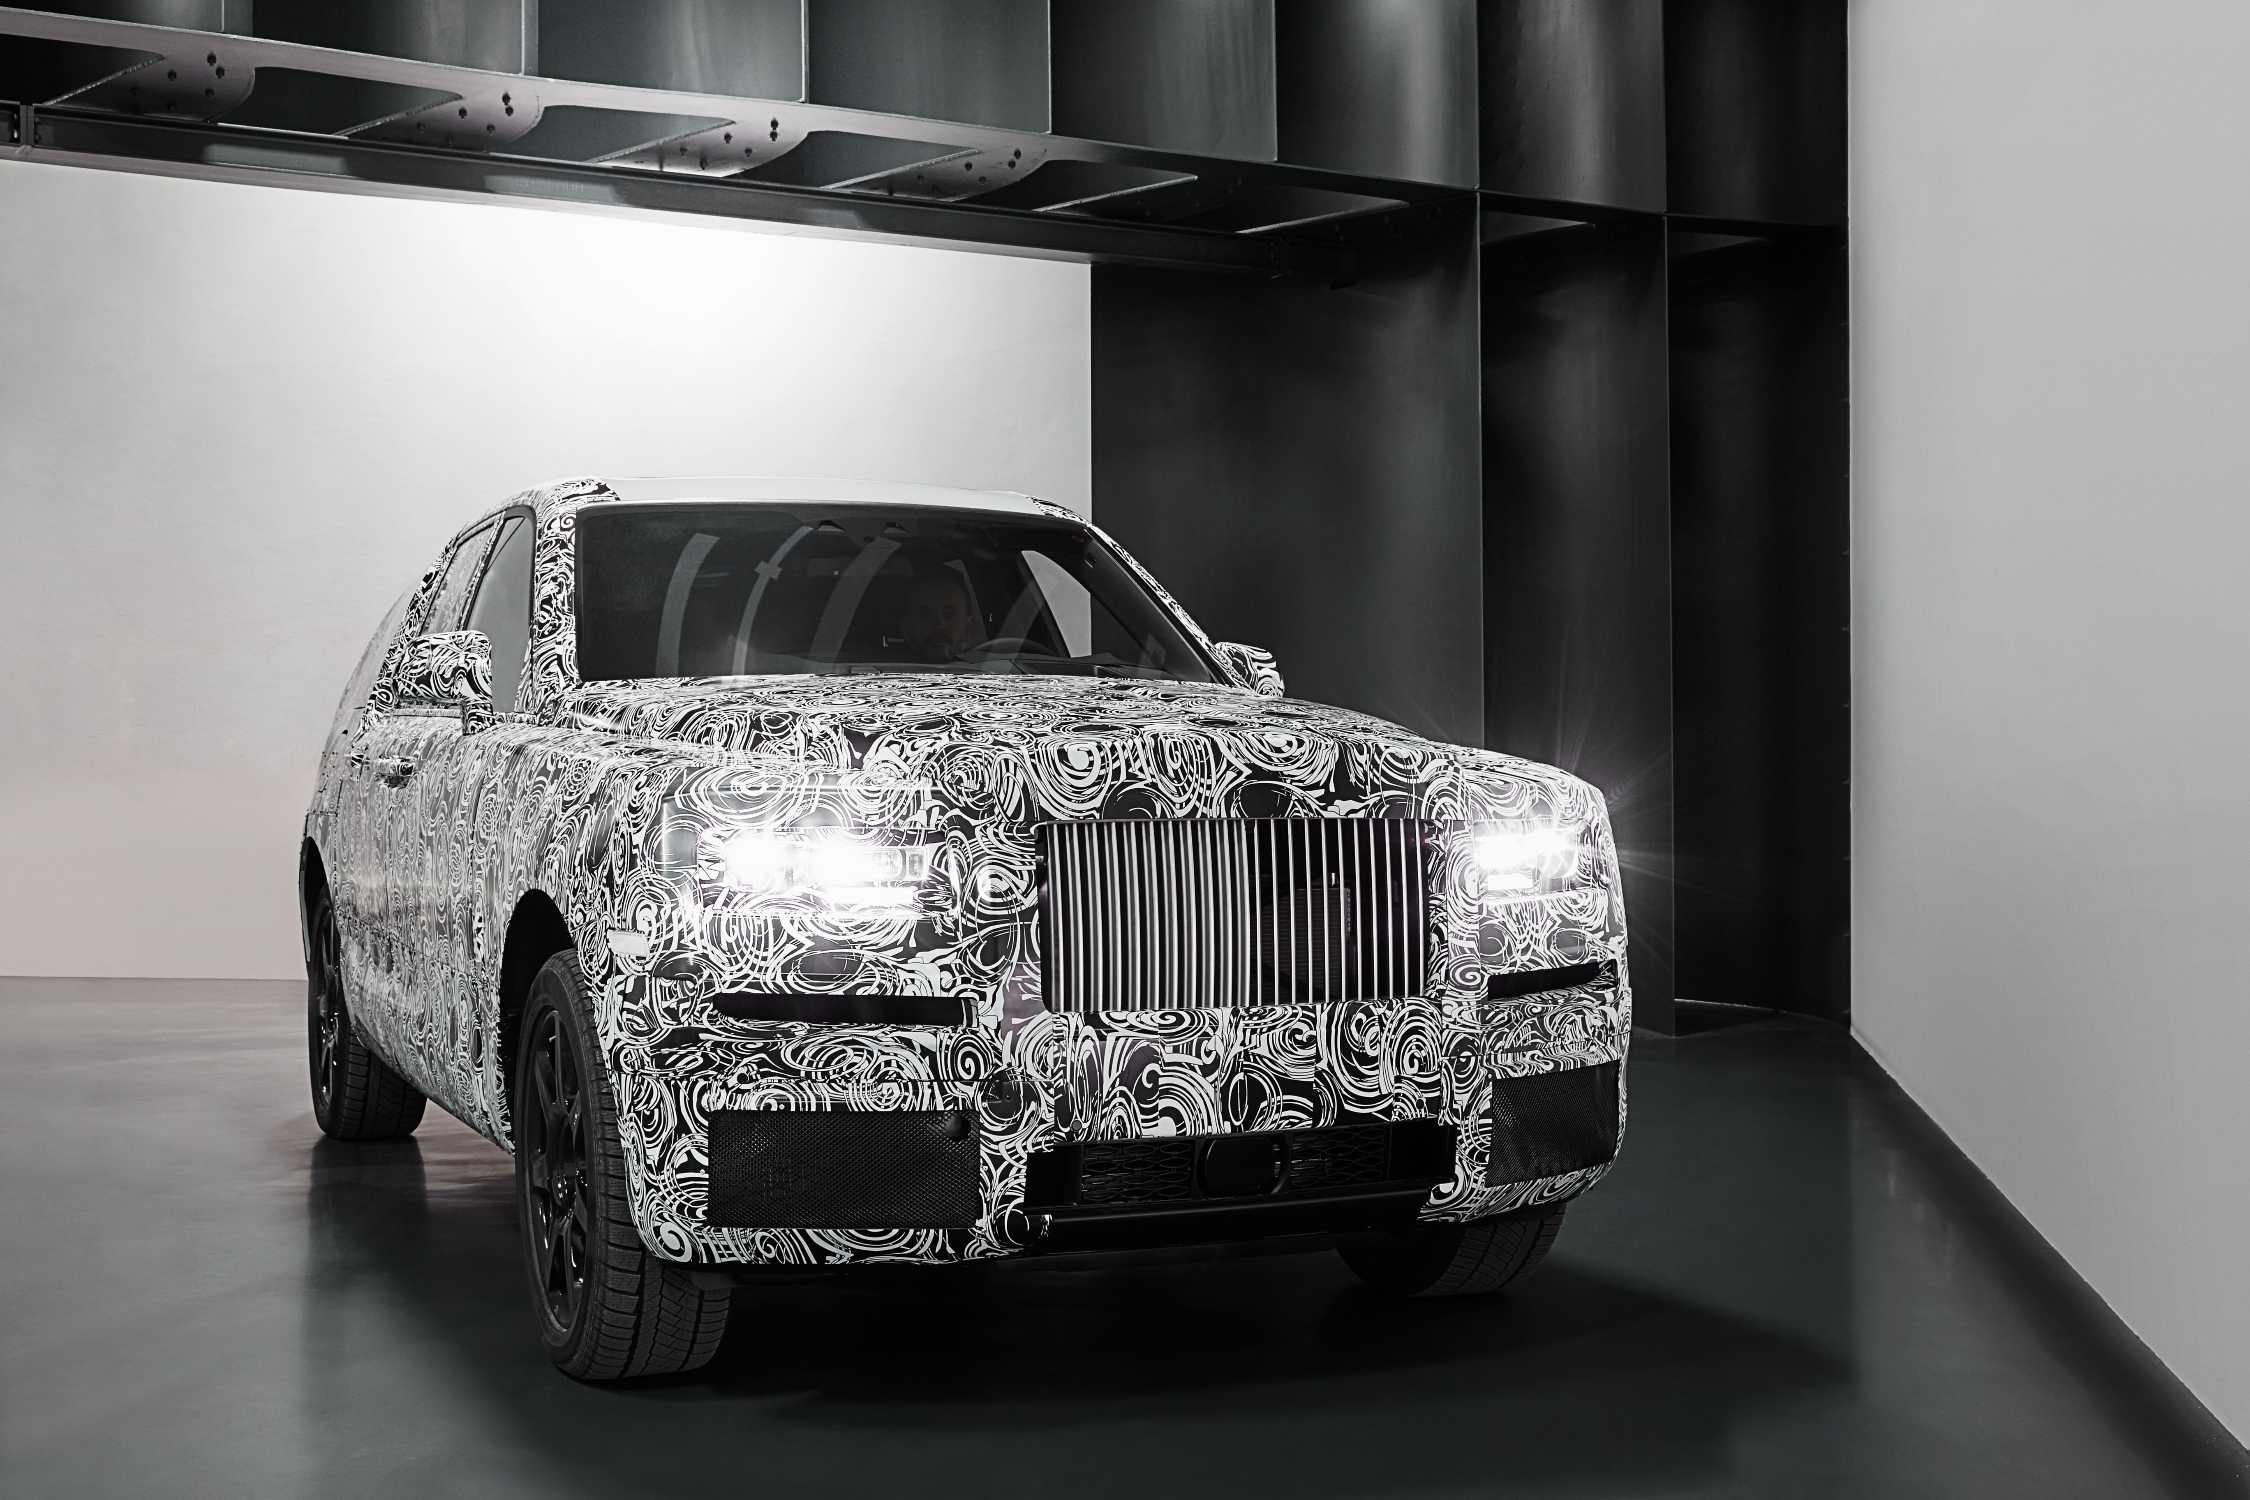 PROJECT CULLINAN TAKES NEXT STEP IN DEVELOPT PROGRAMME